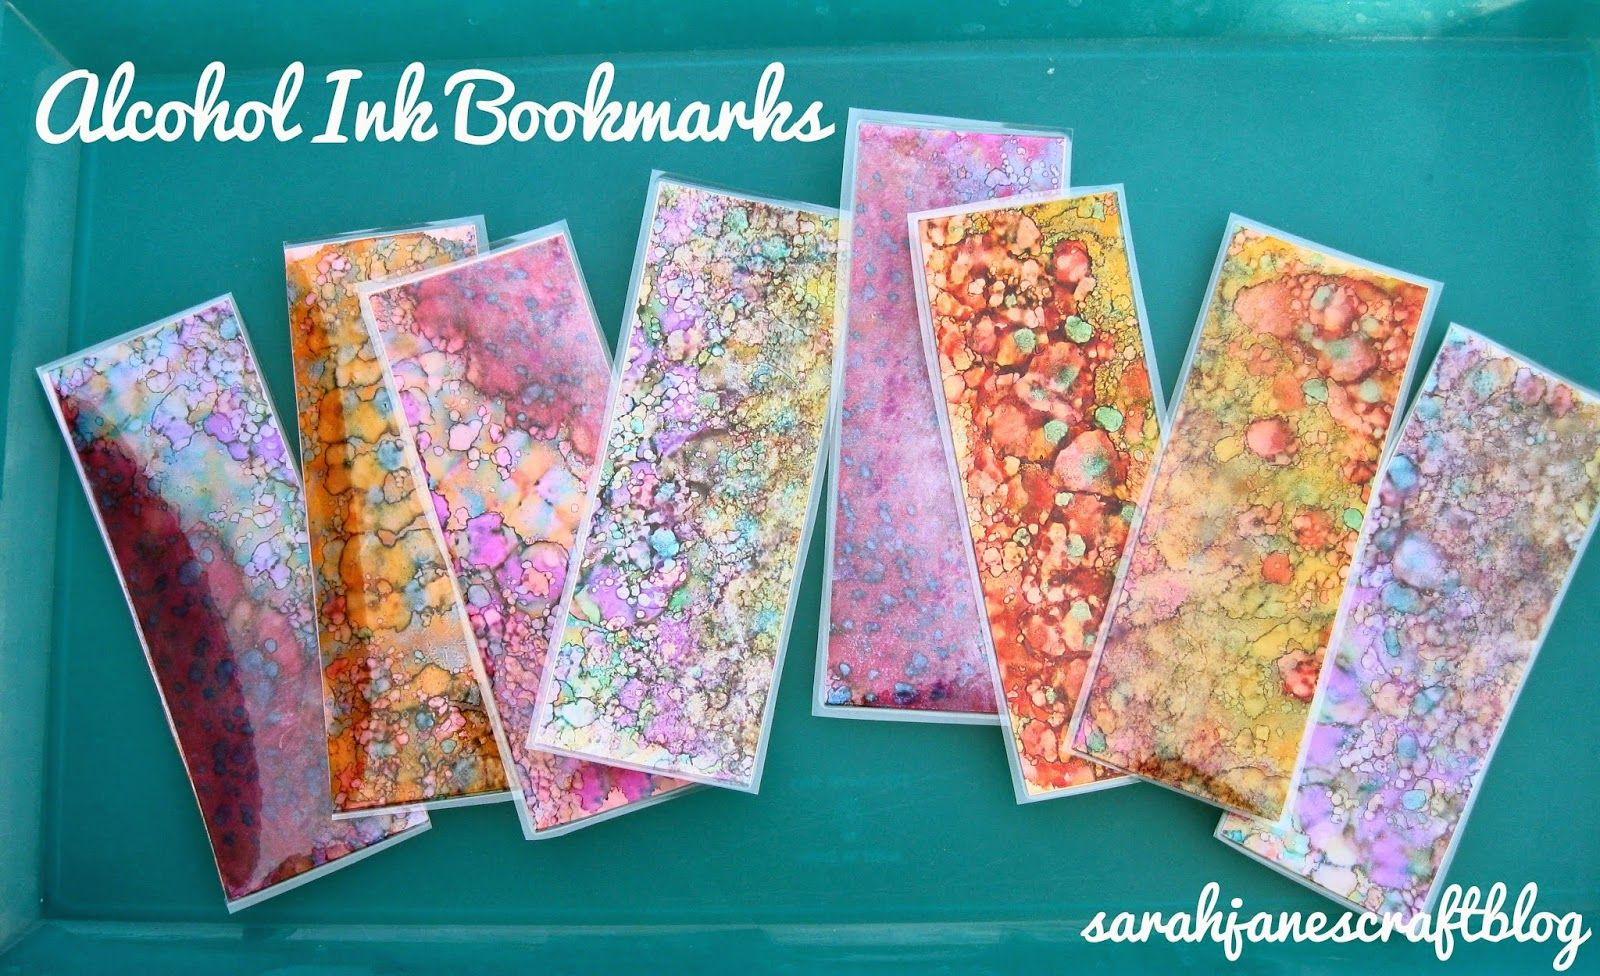 Sarah Jane's Craft Blog: Alcohol Ink Bookmarks #alcoholinkcrafts